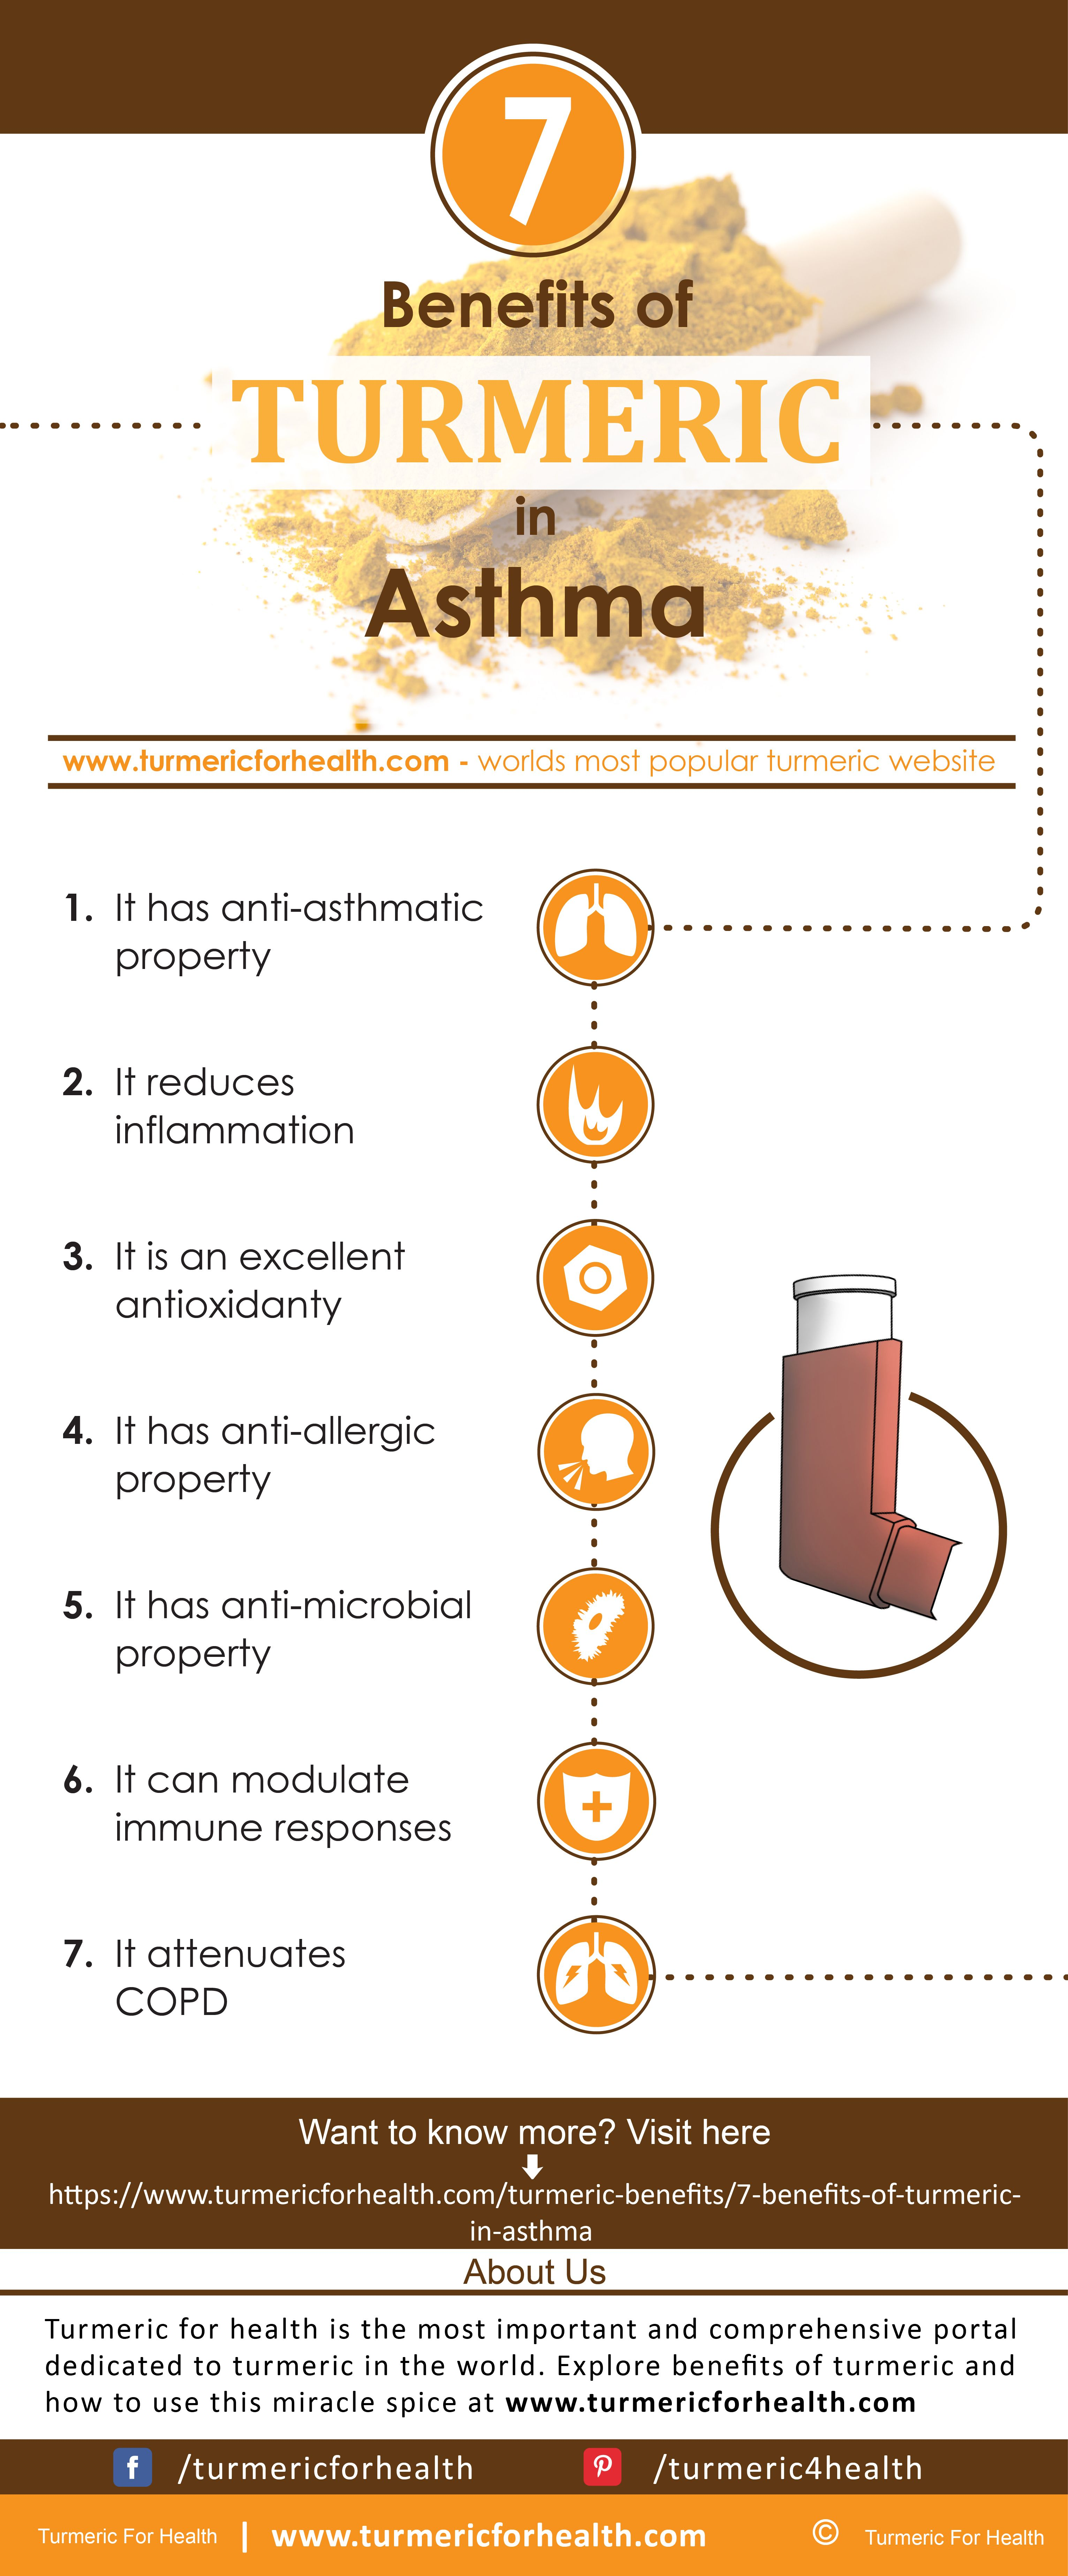 Turmeric finds its use in asthma primarily due to its anti-inflammatory and  anti-asthmatic property. Curcumin and other bioactive compounds present in  ...